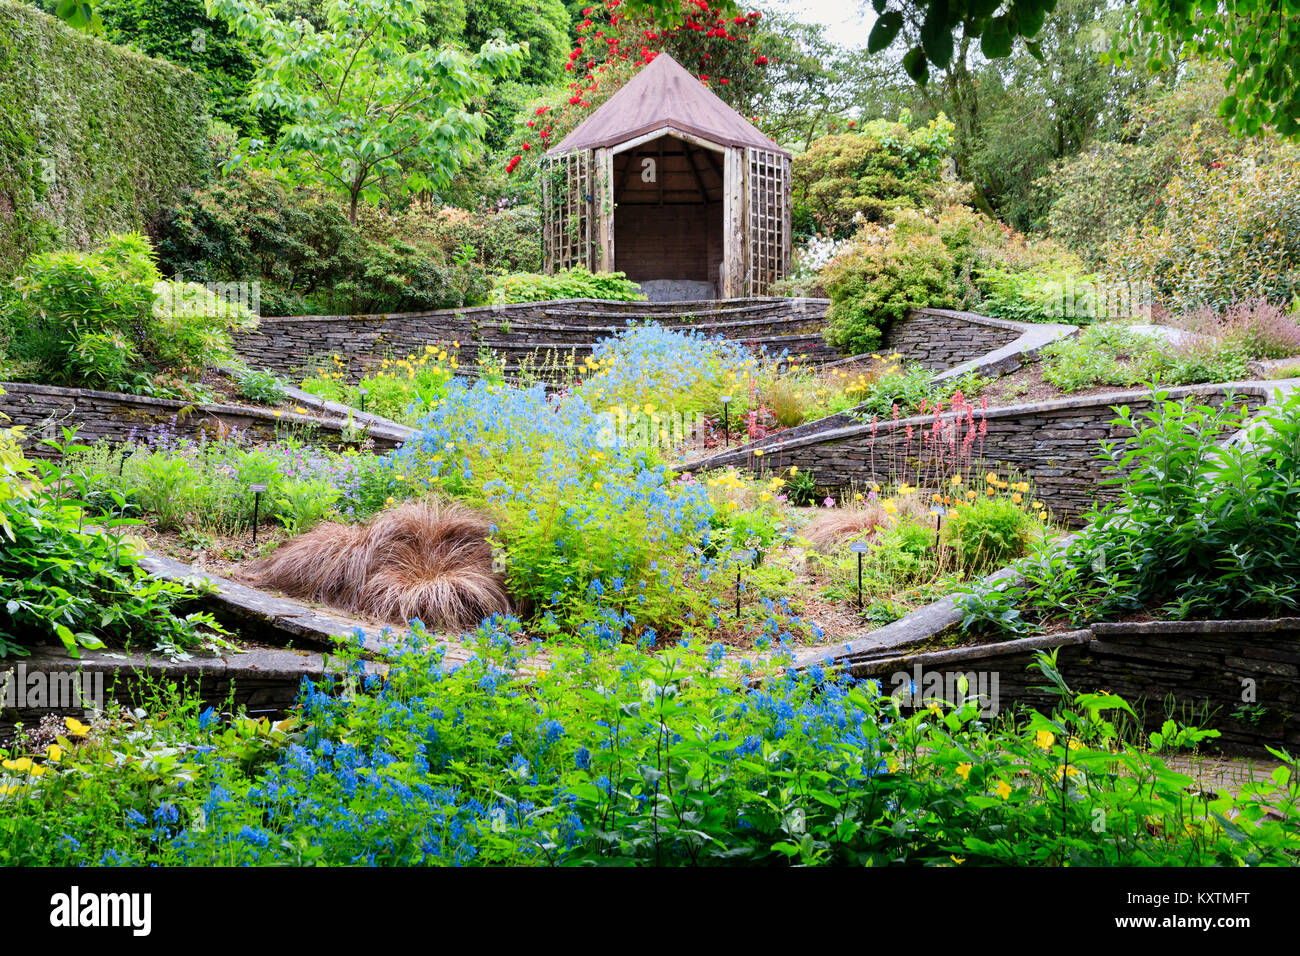 Late spring view of the Ovals Garden at The Garden House, Buckland Monachorum, Devon, UK, with a blue river of Corydalis - Stock Image